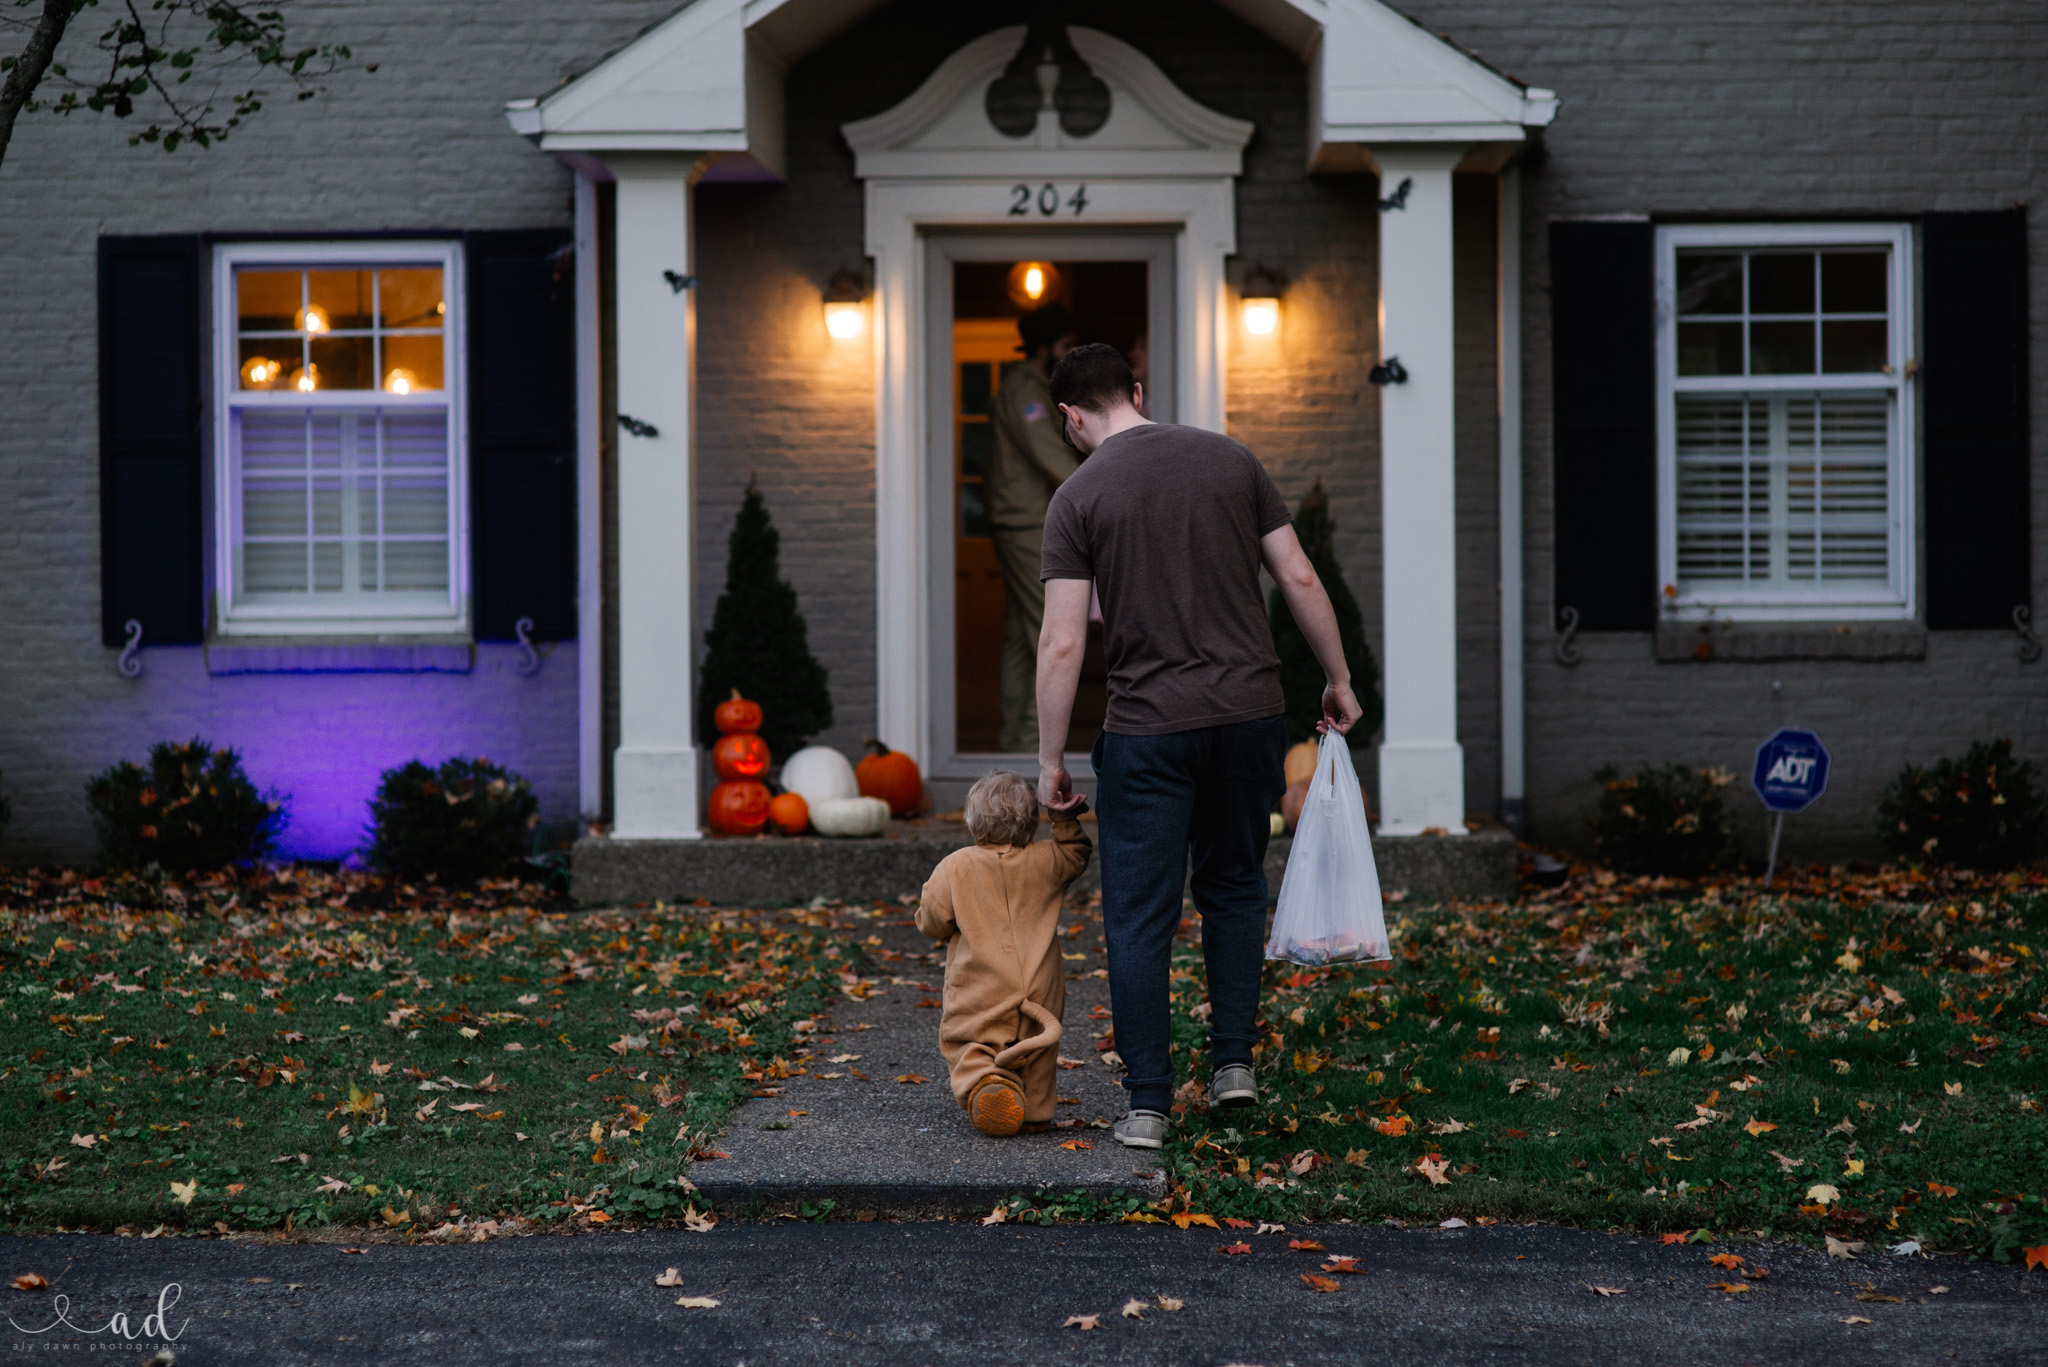 How to Take Great Halloween Photos